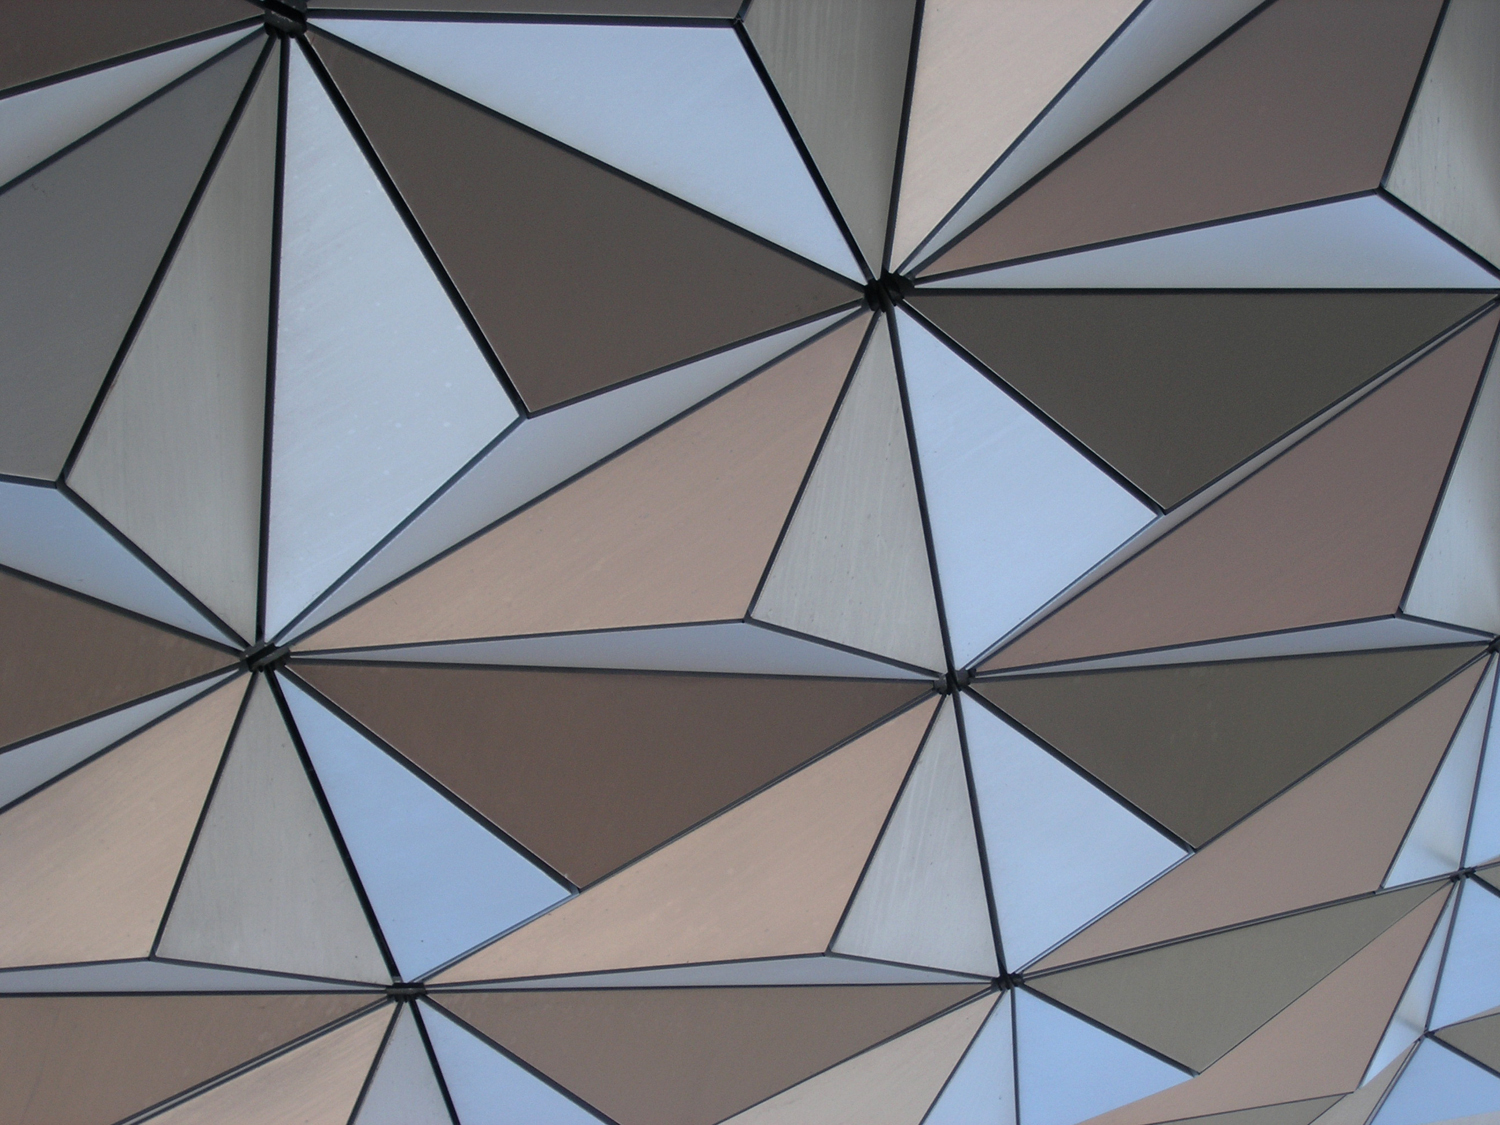 epcot polygons 1196286